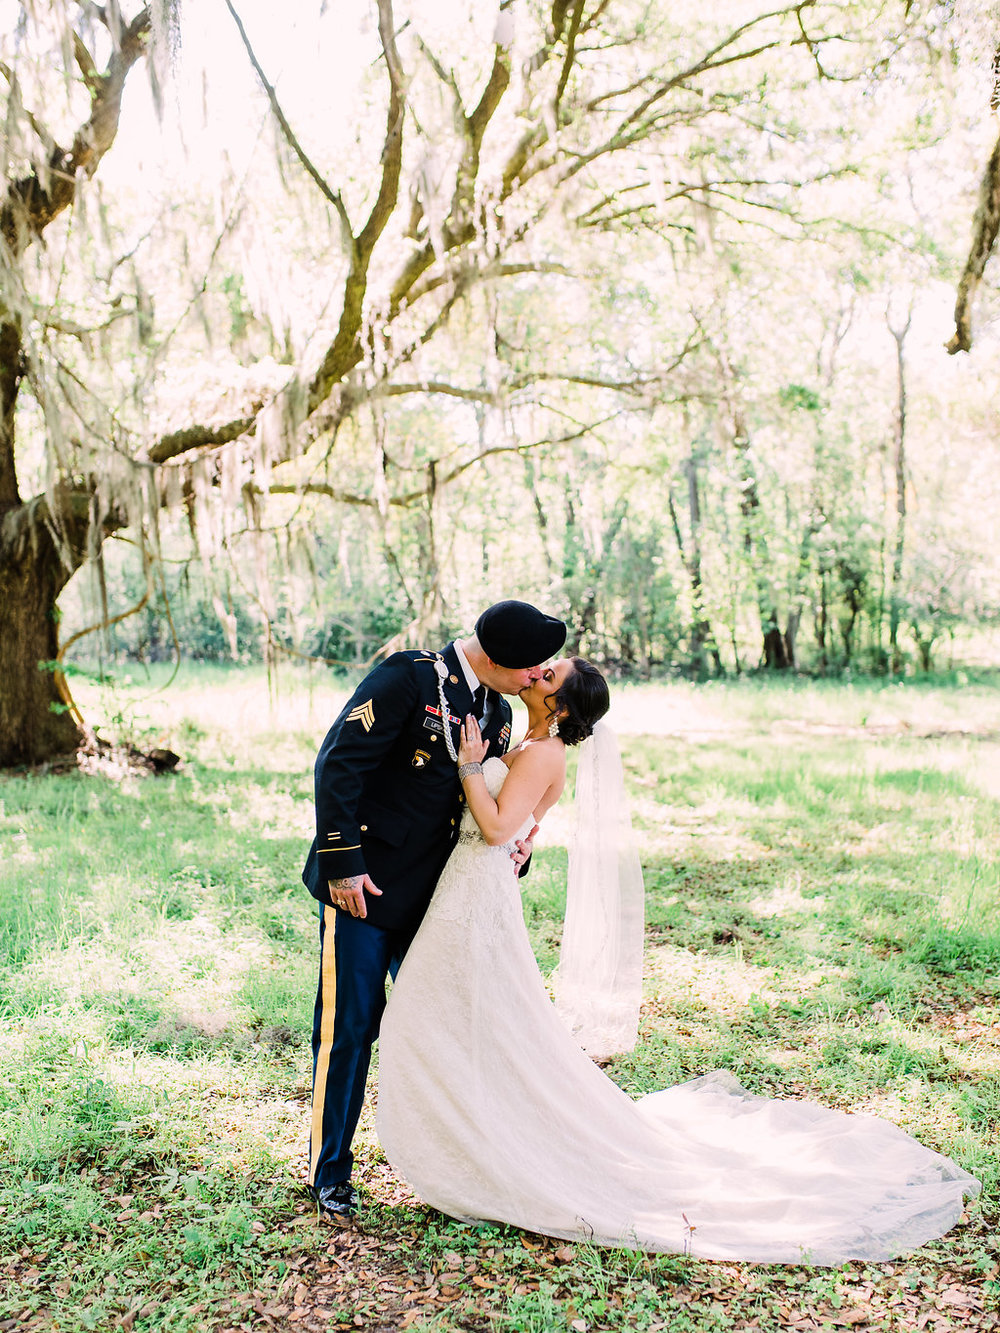 ivory-and-beau-bridal-boutique-lipski-surprise-wedding-5d-photography-military-wedding-savannah-savannah-military-bride-surprise-wedding-12.jpg